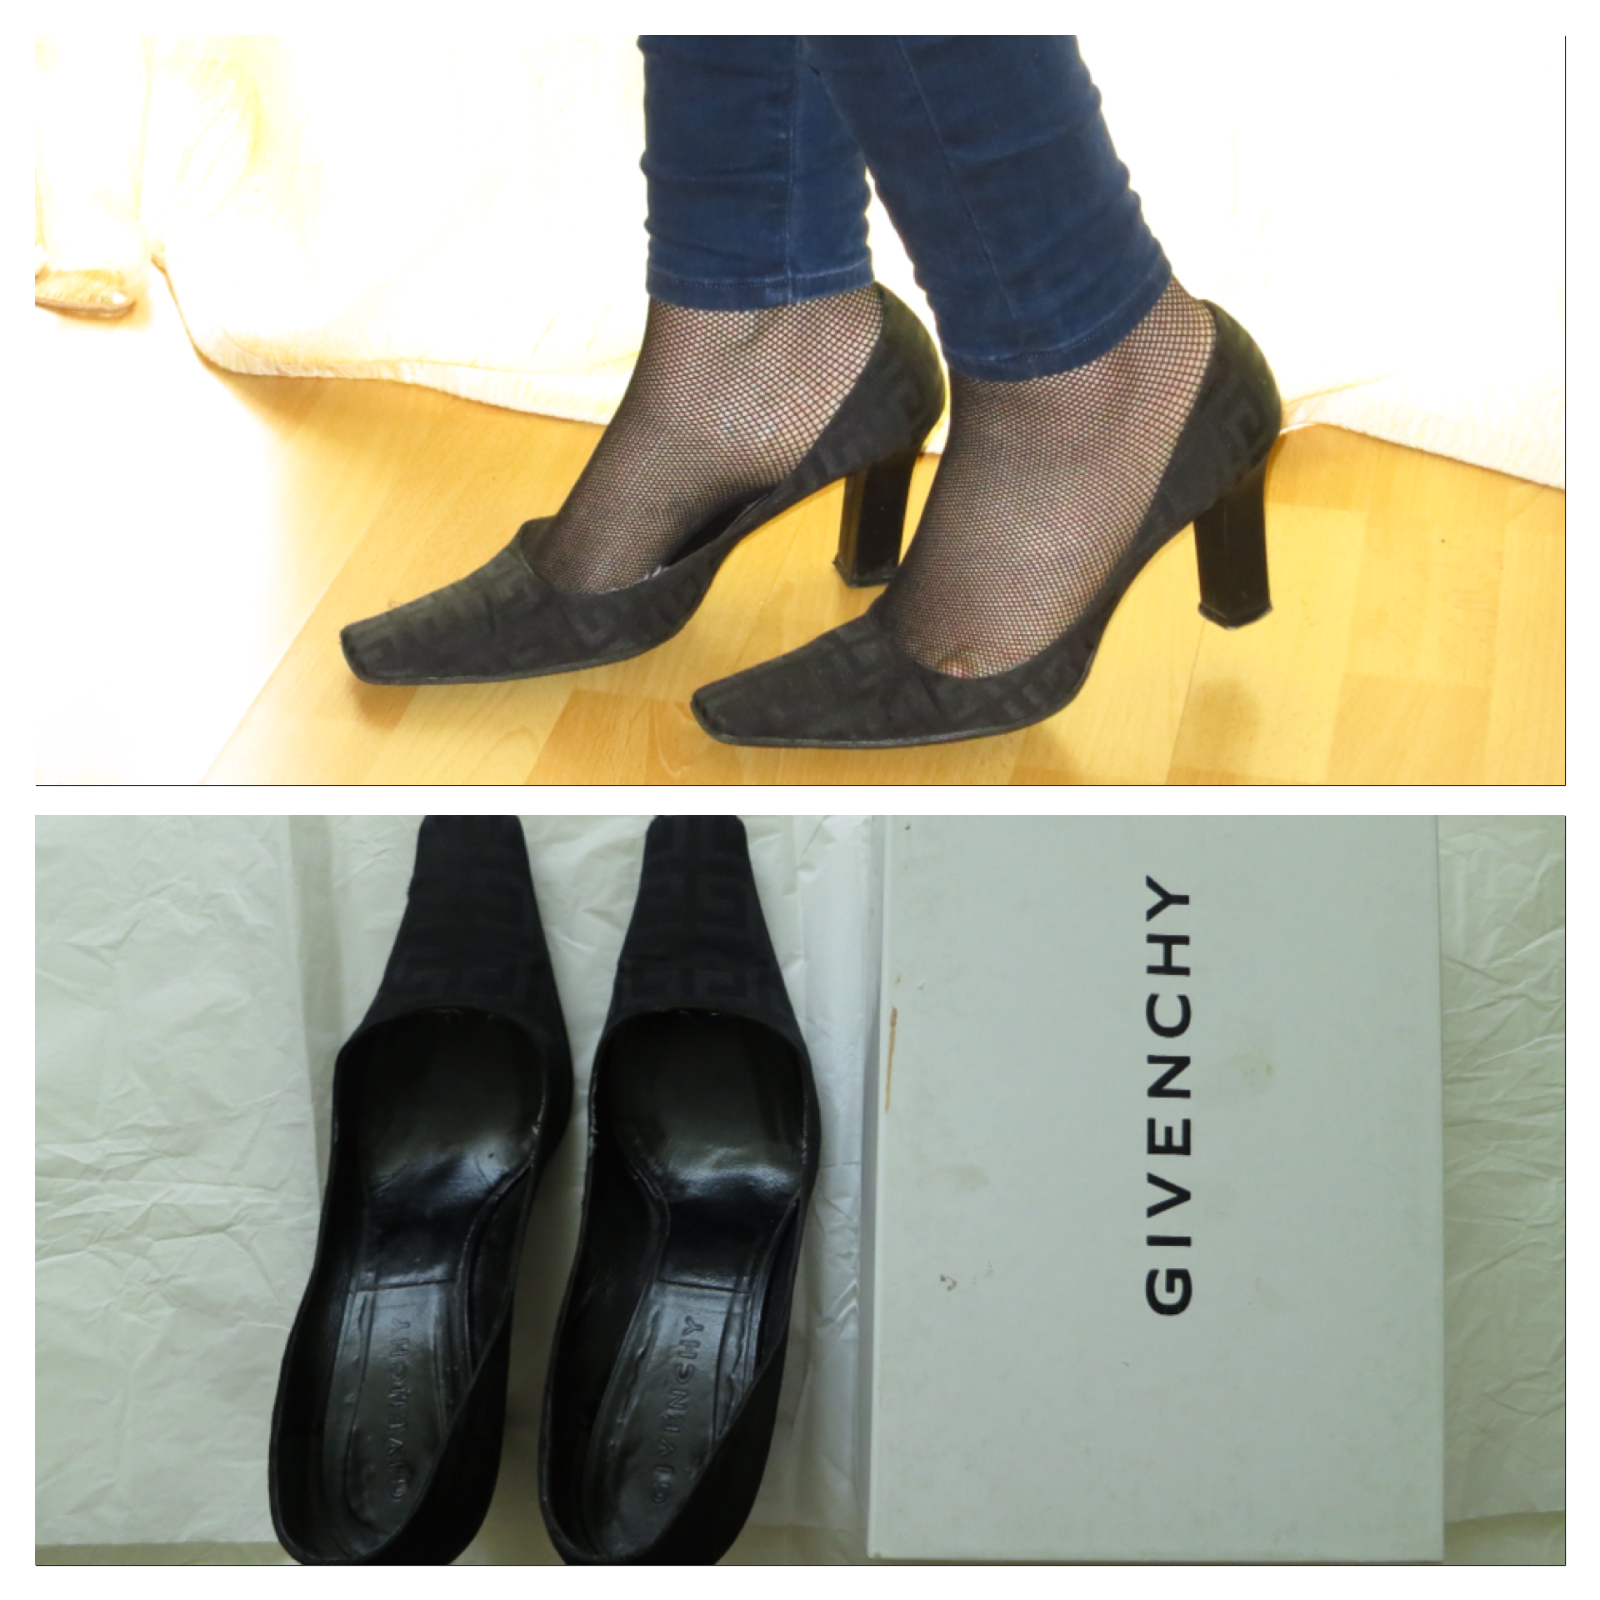 Selten  Givenchy Pumps Schuhe Schuhes Stoff Logo Gr. 41 sehr bequem OVP NP